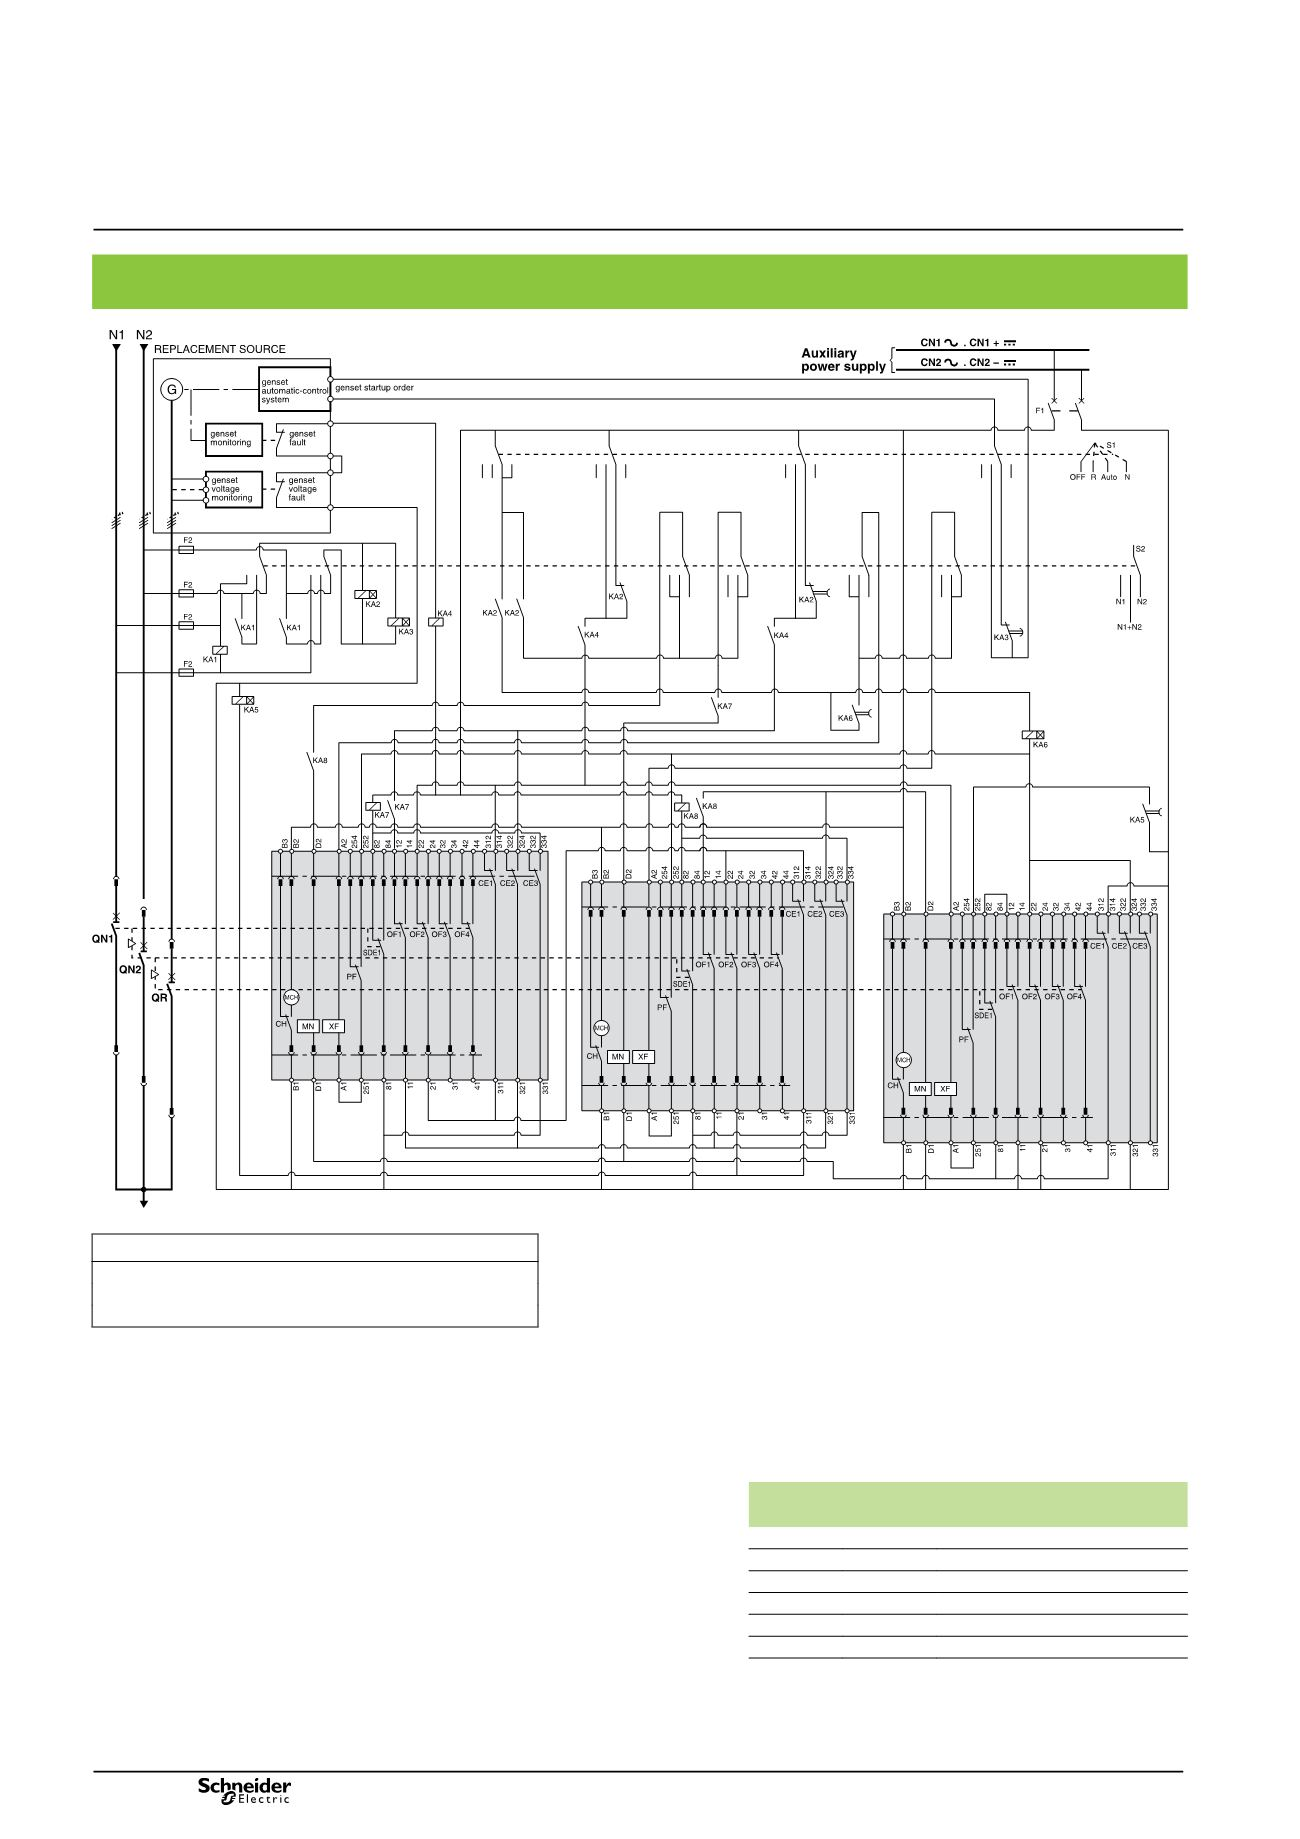 Masterpact Nt And Nw Power Circuit Breakers Cnc Wiring Diagram Page Background D 26 Electrical Diagrams